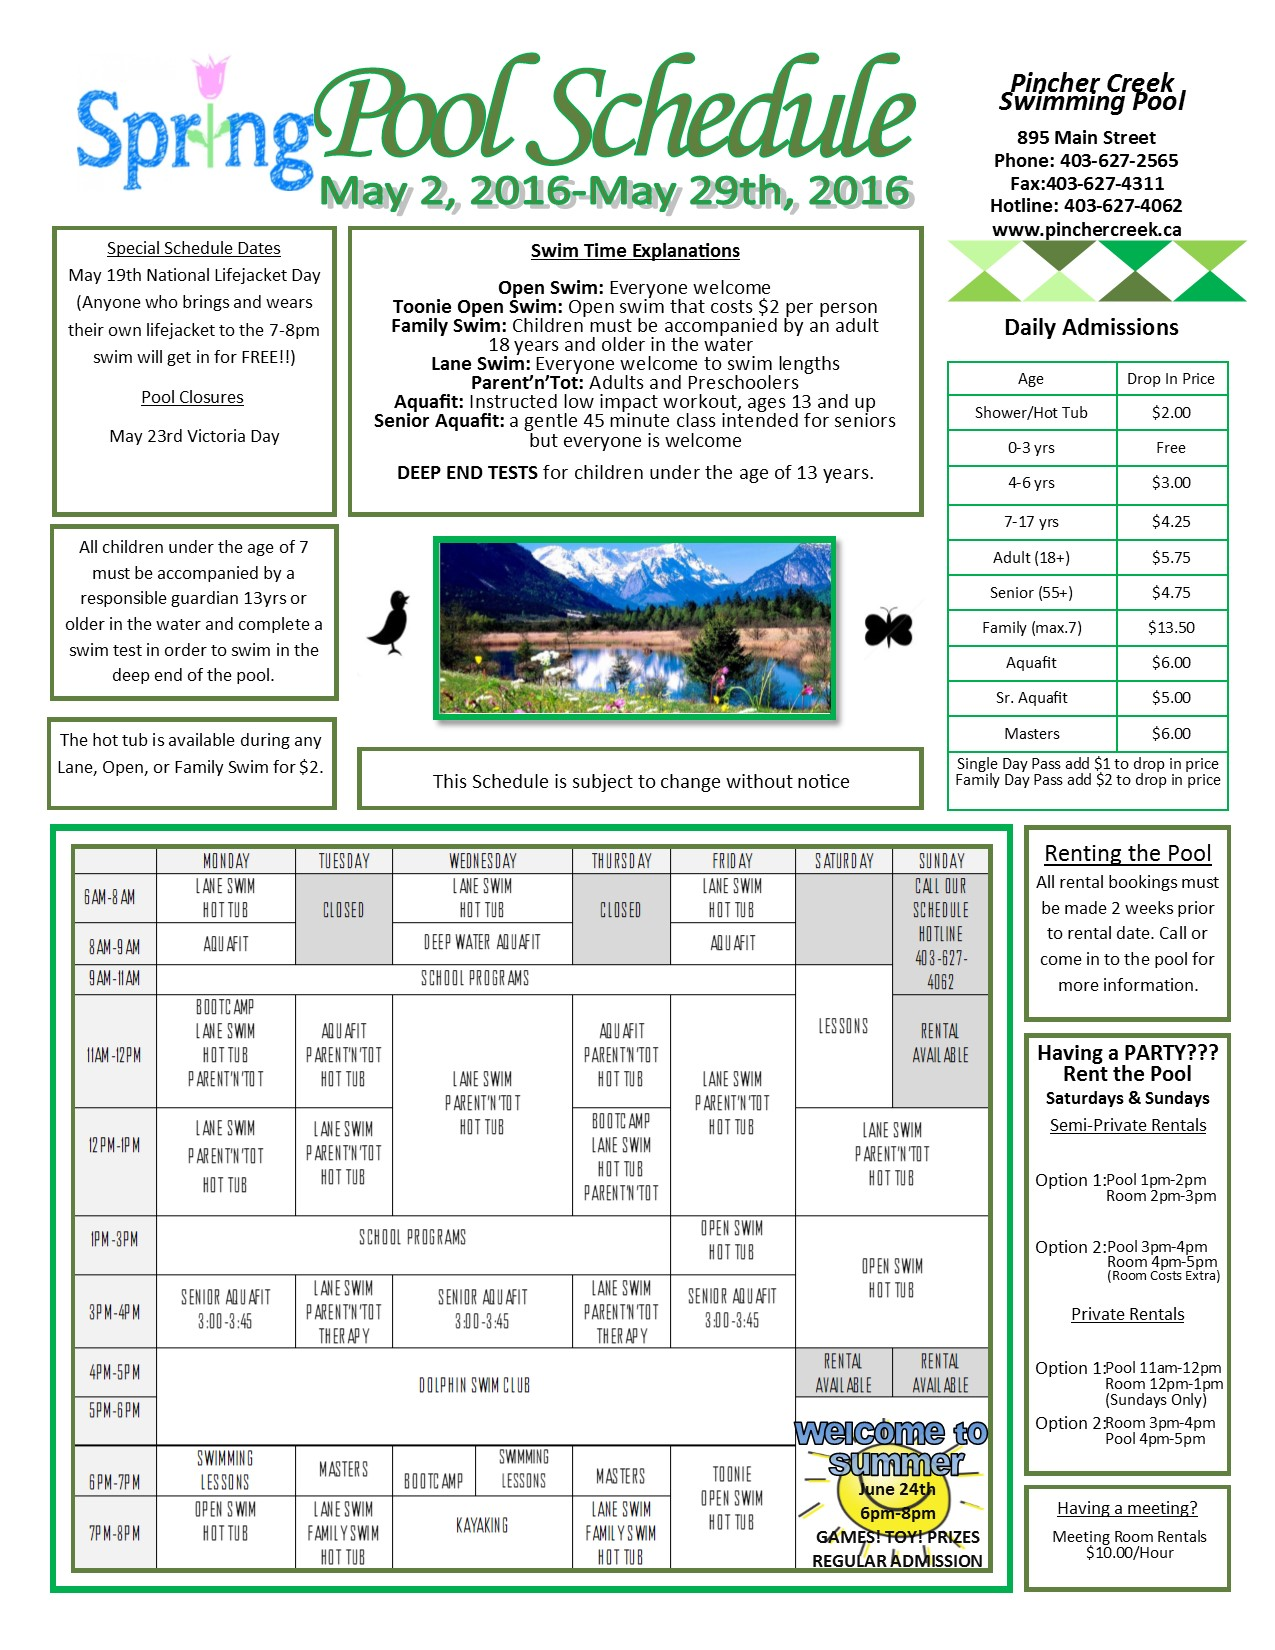 Town of pincher creek multi purpose facility pool for Pincher creek swimming pool schedule